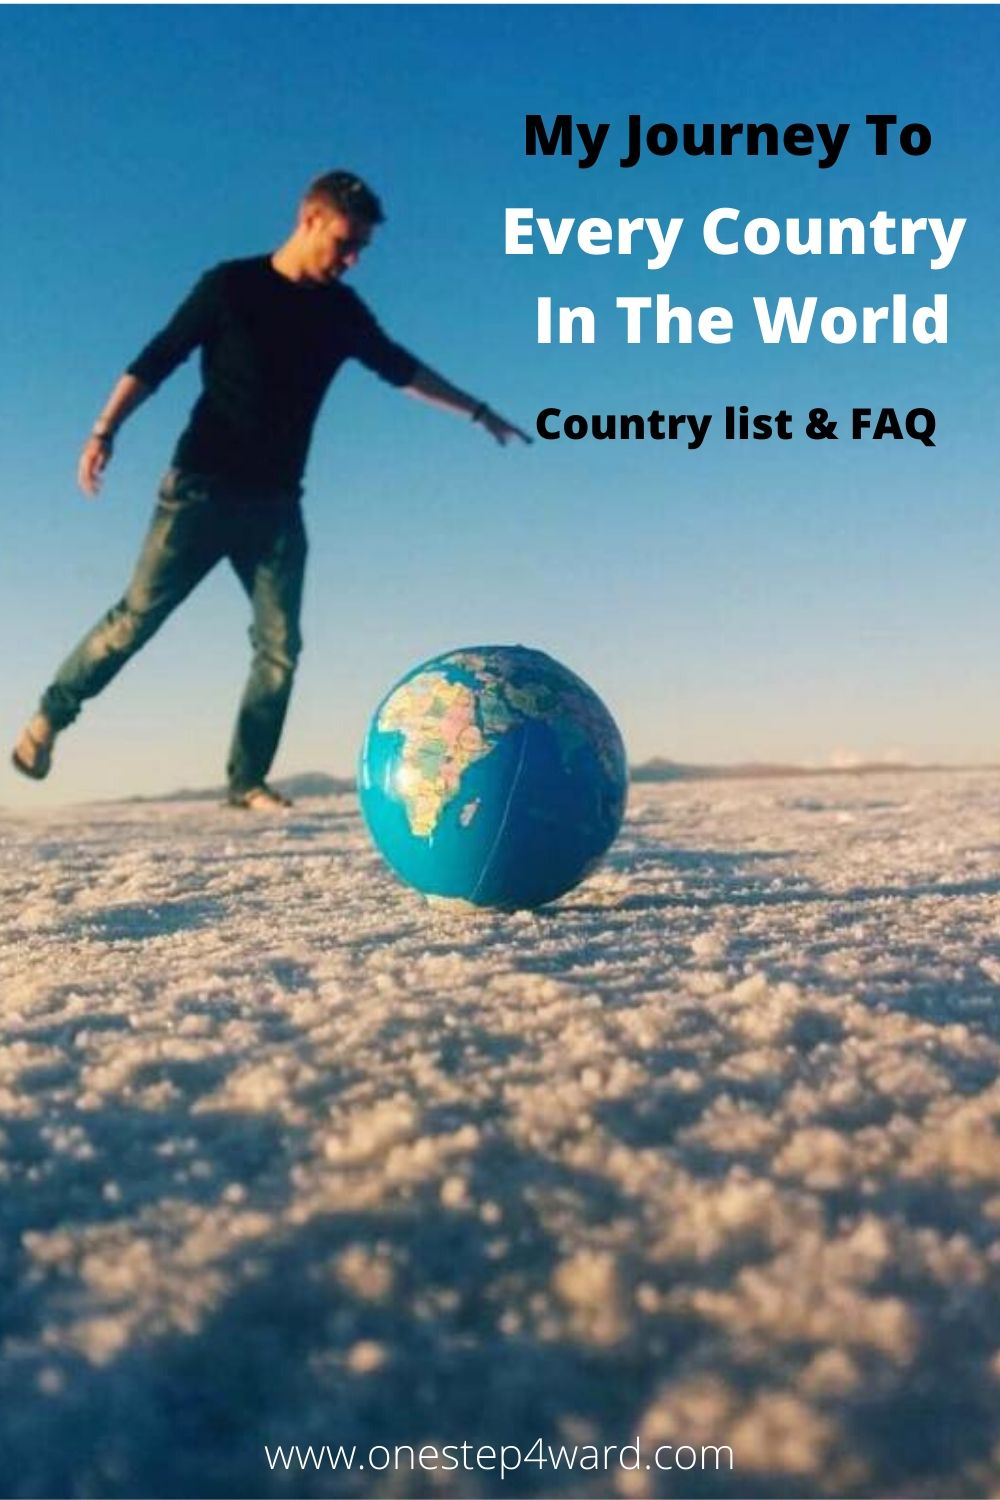 my journey to every country in the world country list and FAQ